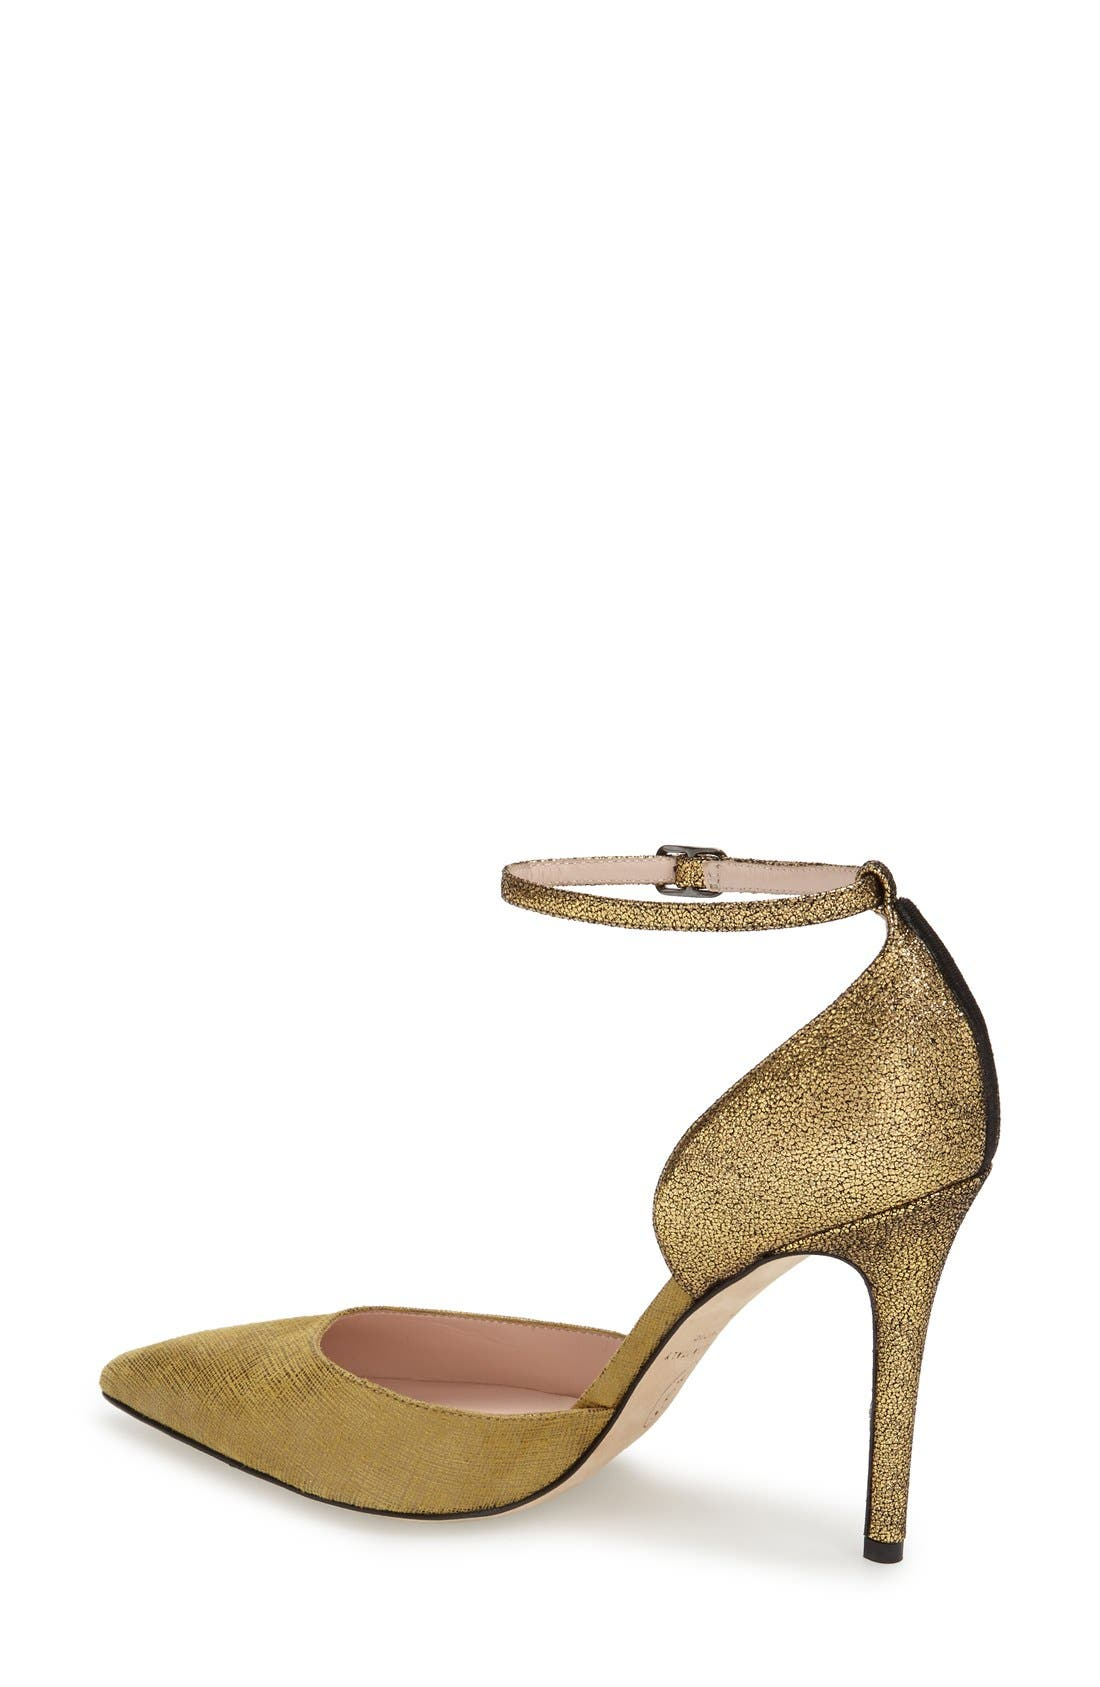 Alternate Image 2  - SJP by Sarah Jessica Parker 'Bella' Pointy Toe Ankle Strap Pump (Women) (Nordstrom Exclusive)